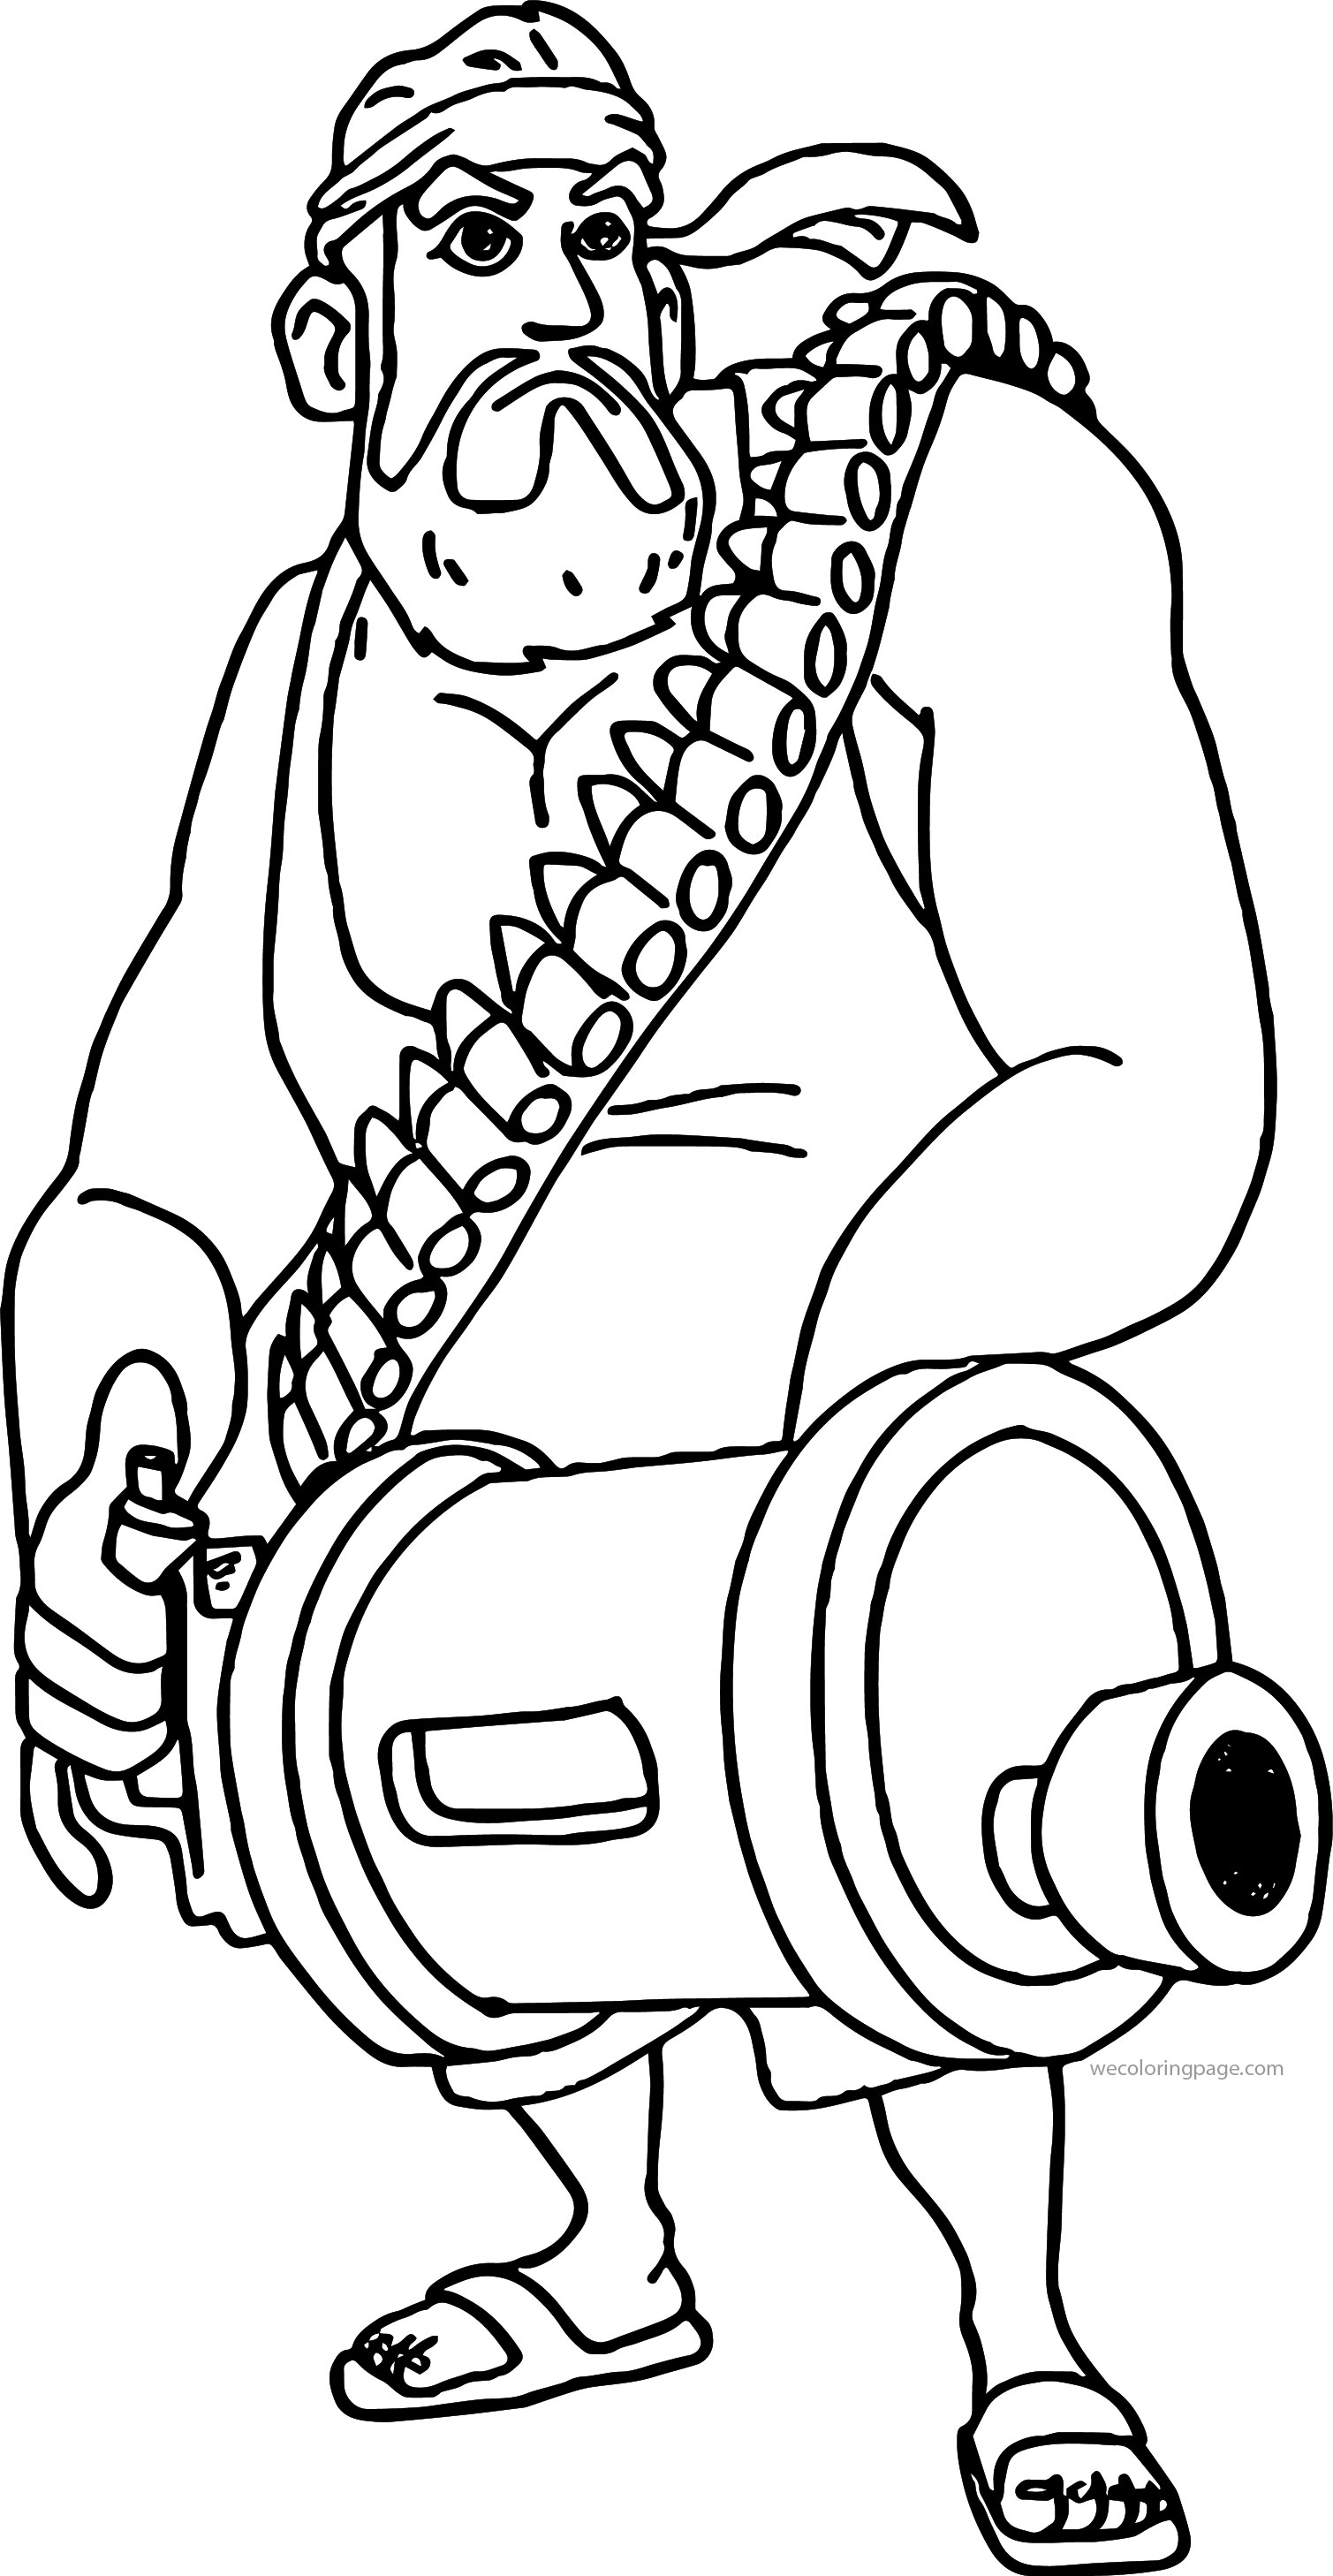 boom coloring on the beach character heavy soldier coloring page